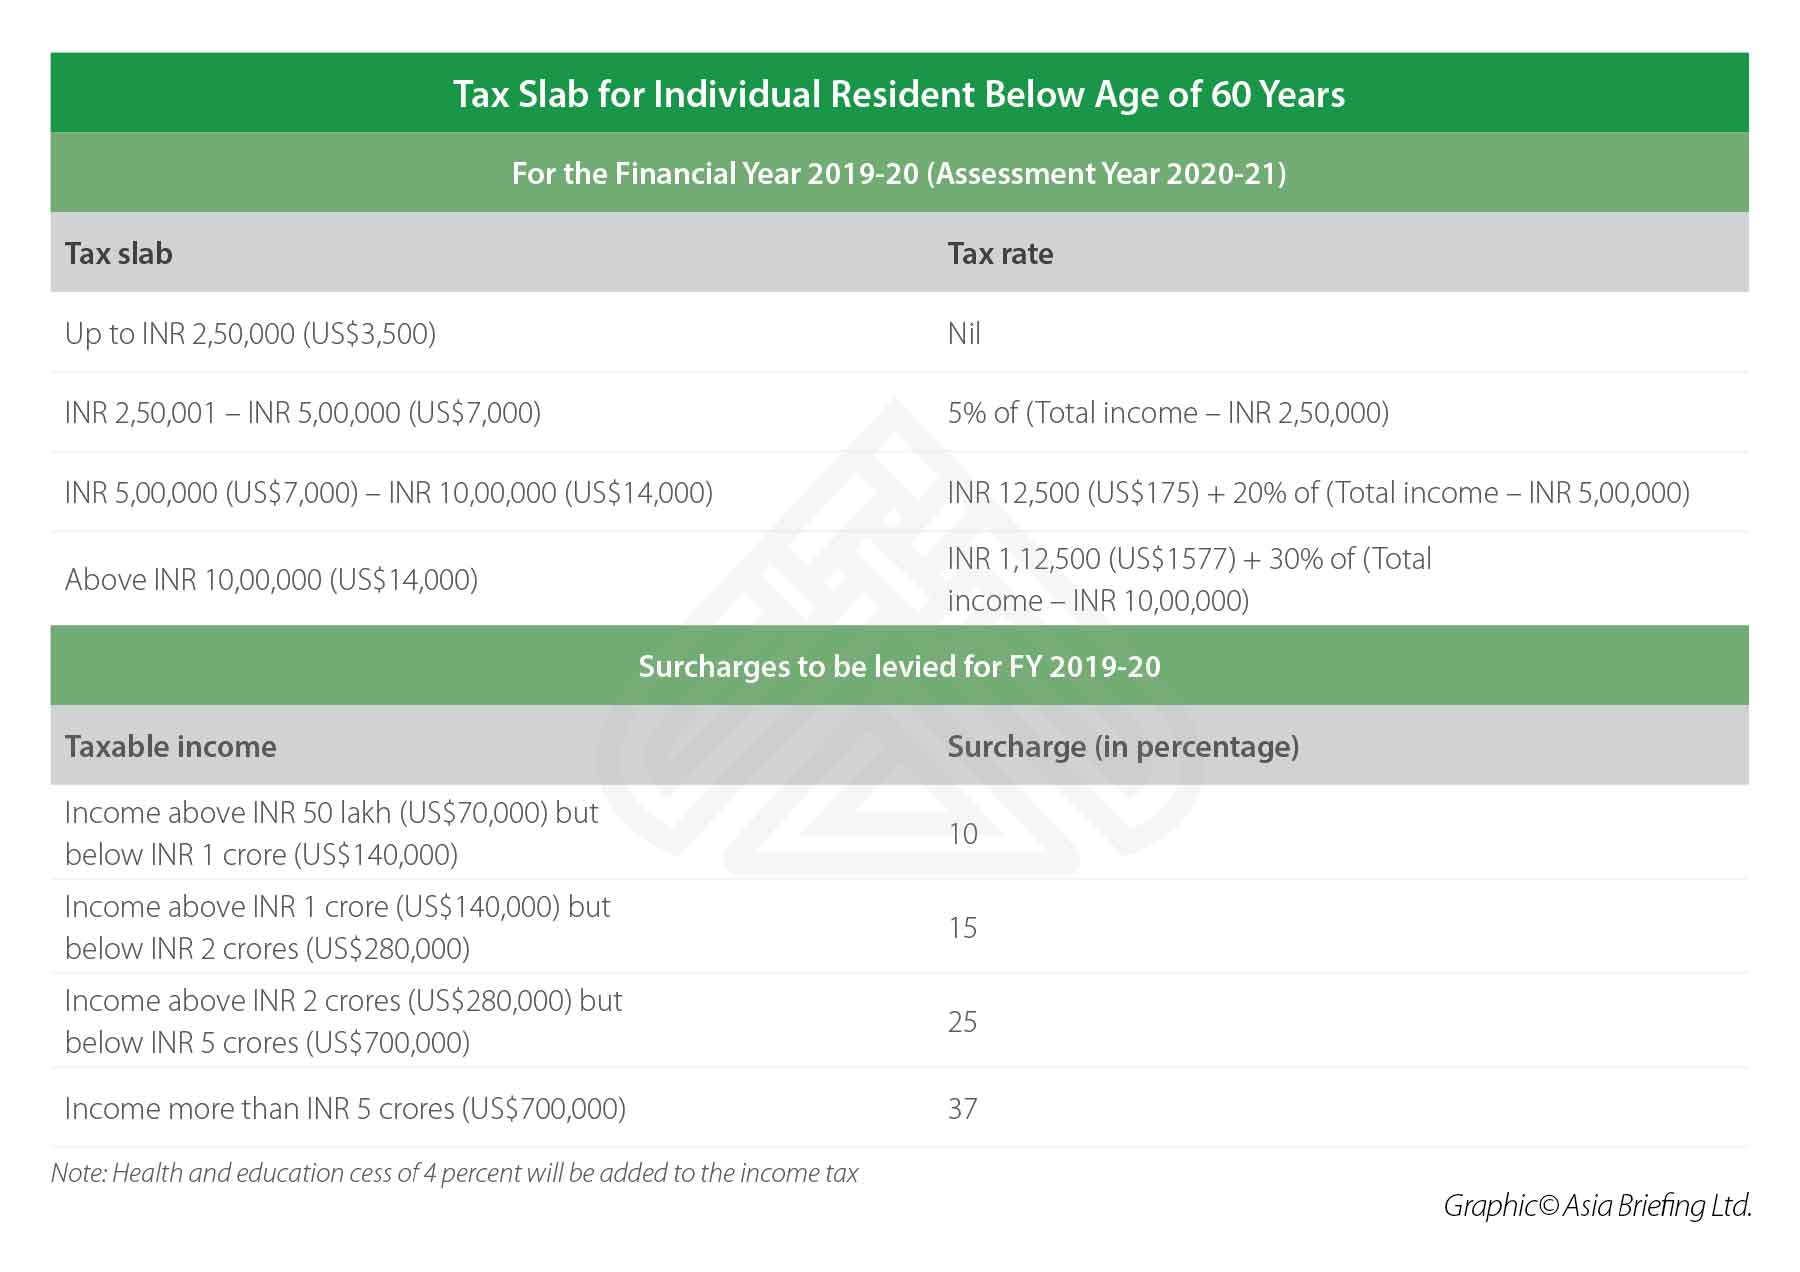 1. Tax Slab for Individual Resident Below Age of 60 Years